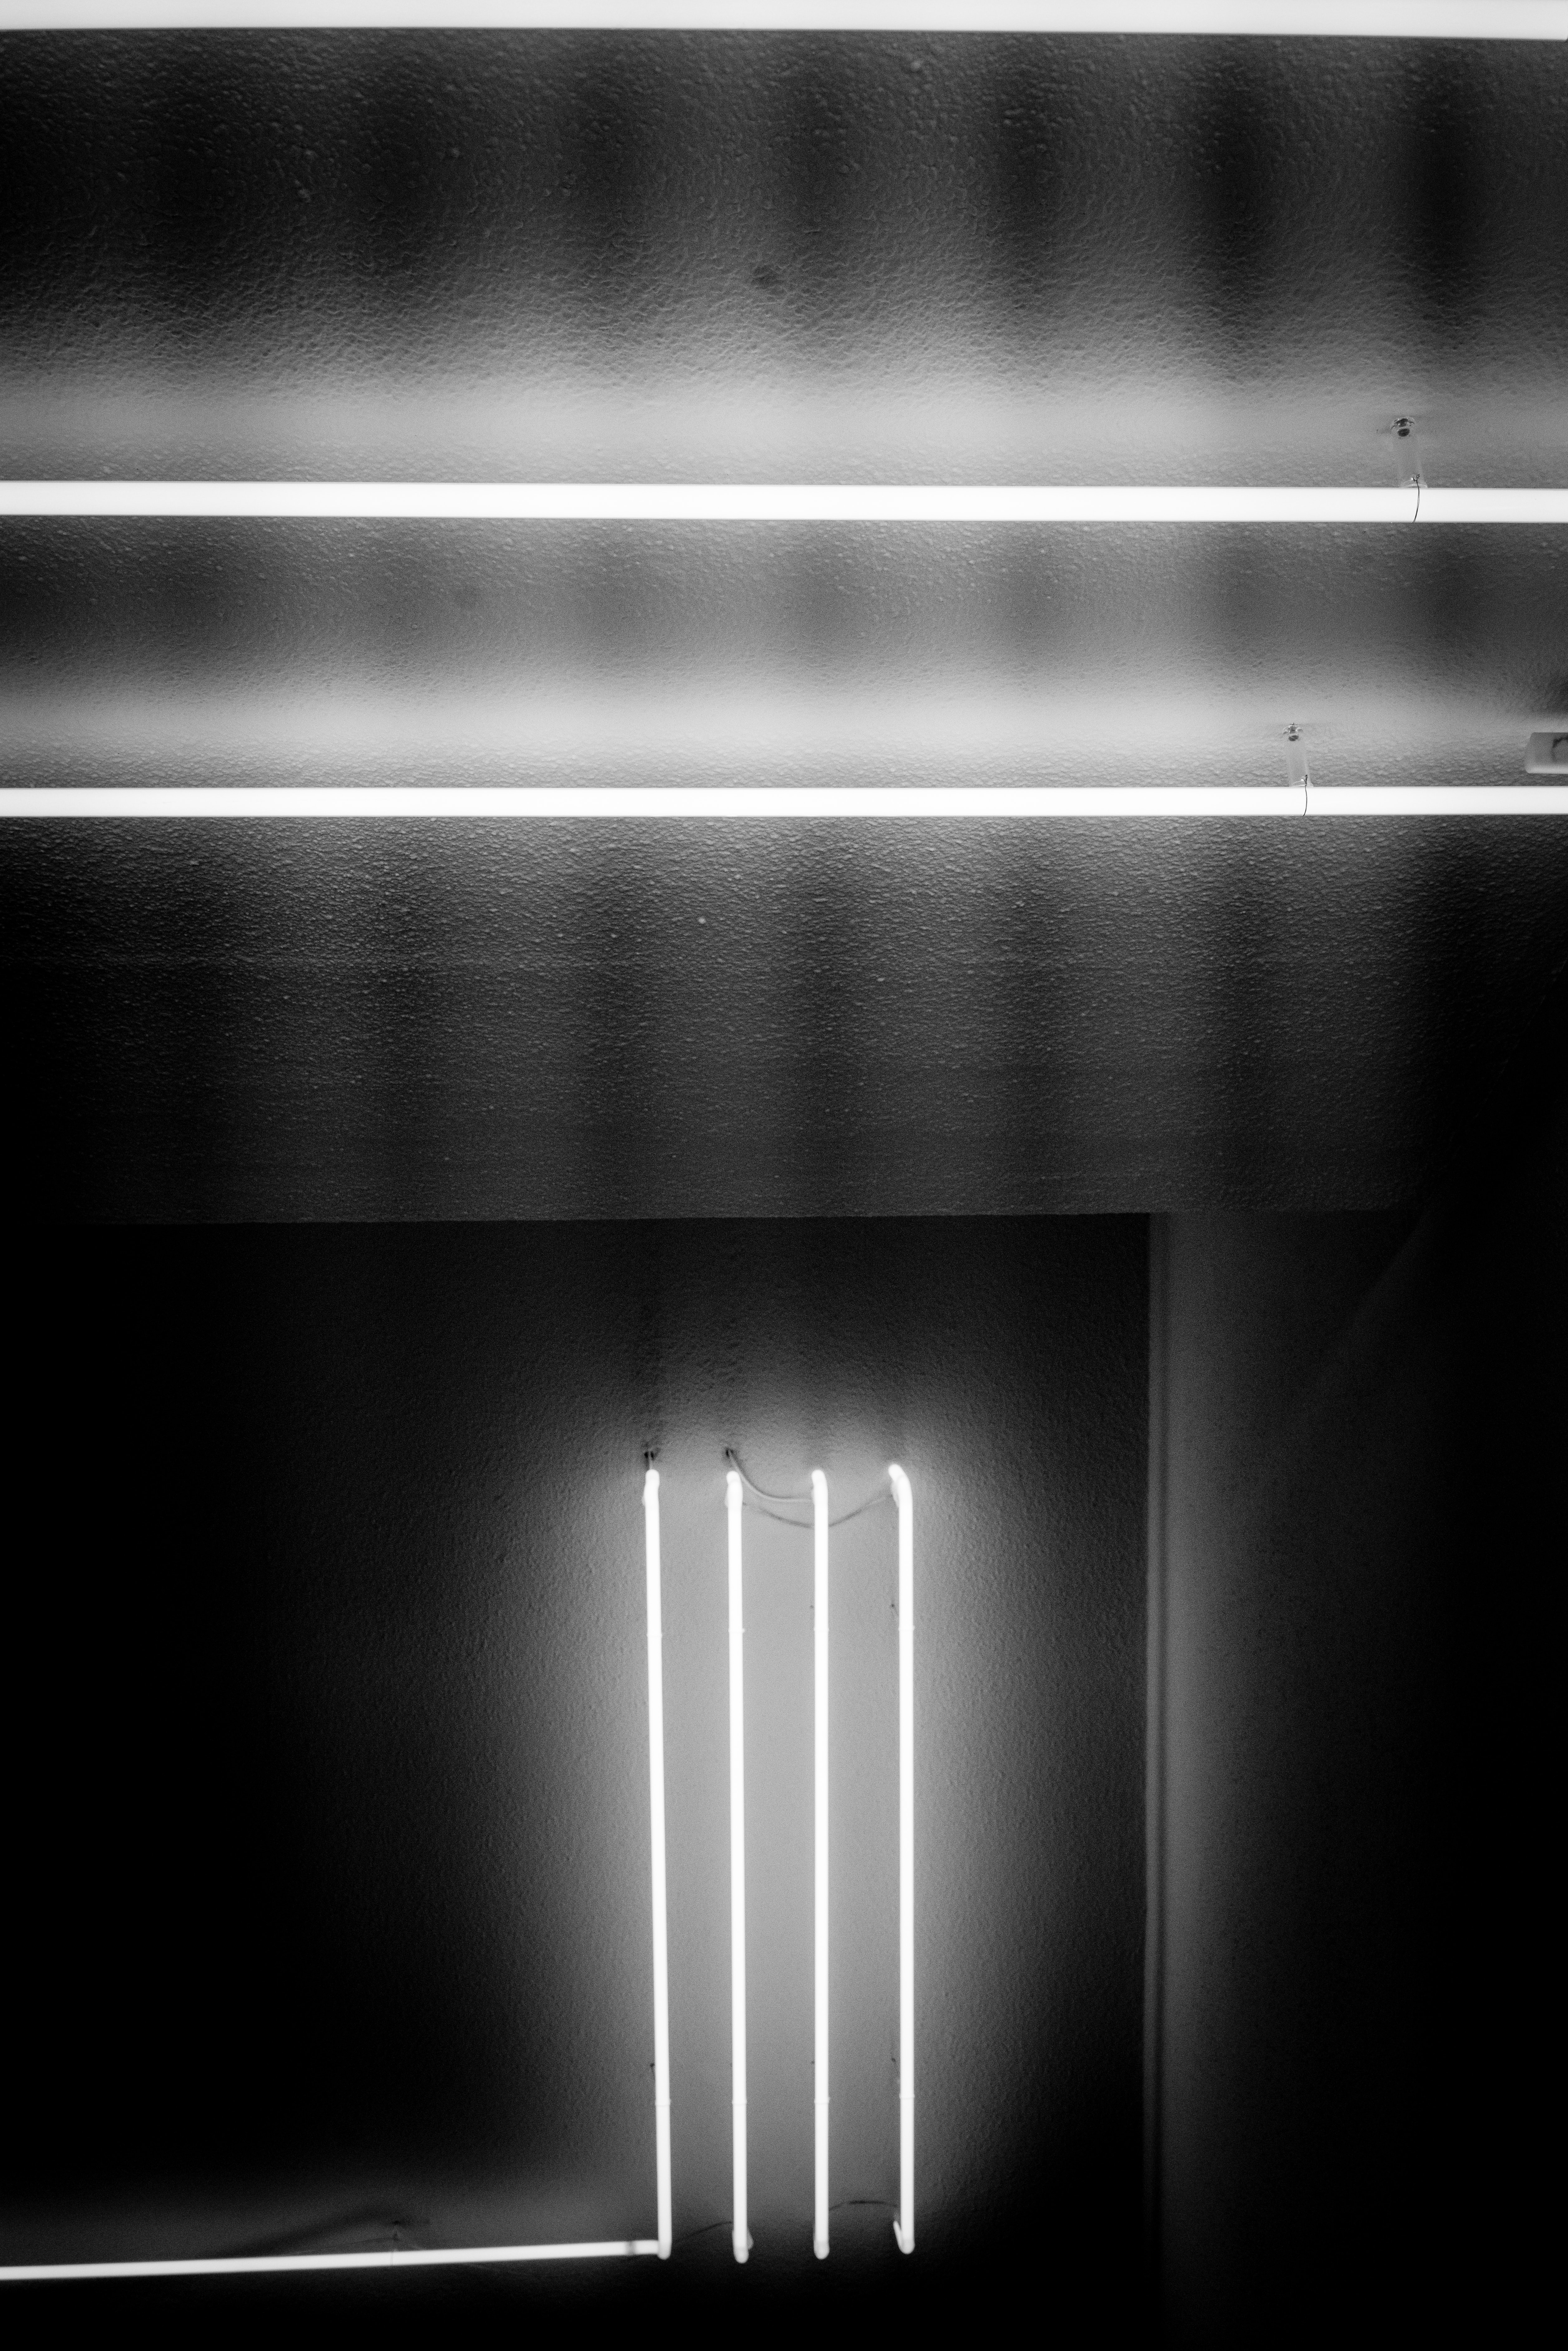 greyscale photography of lighted fluorescent lamps inside room